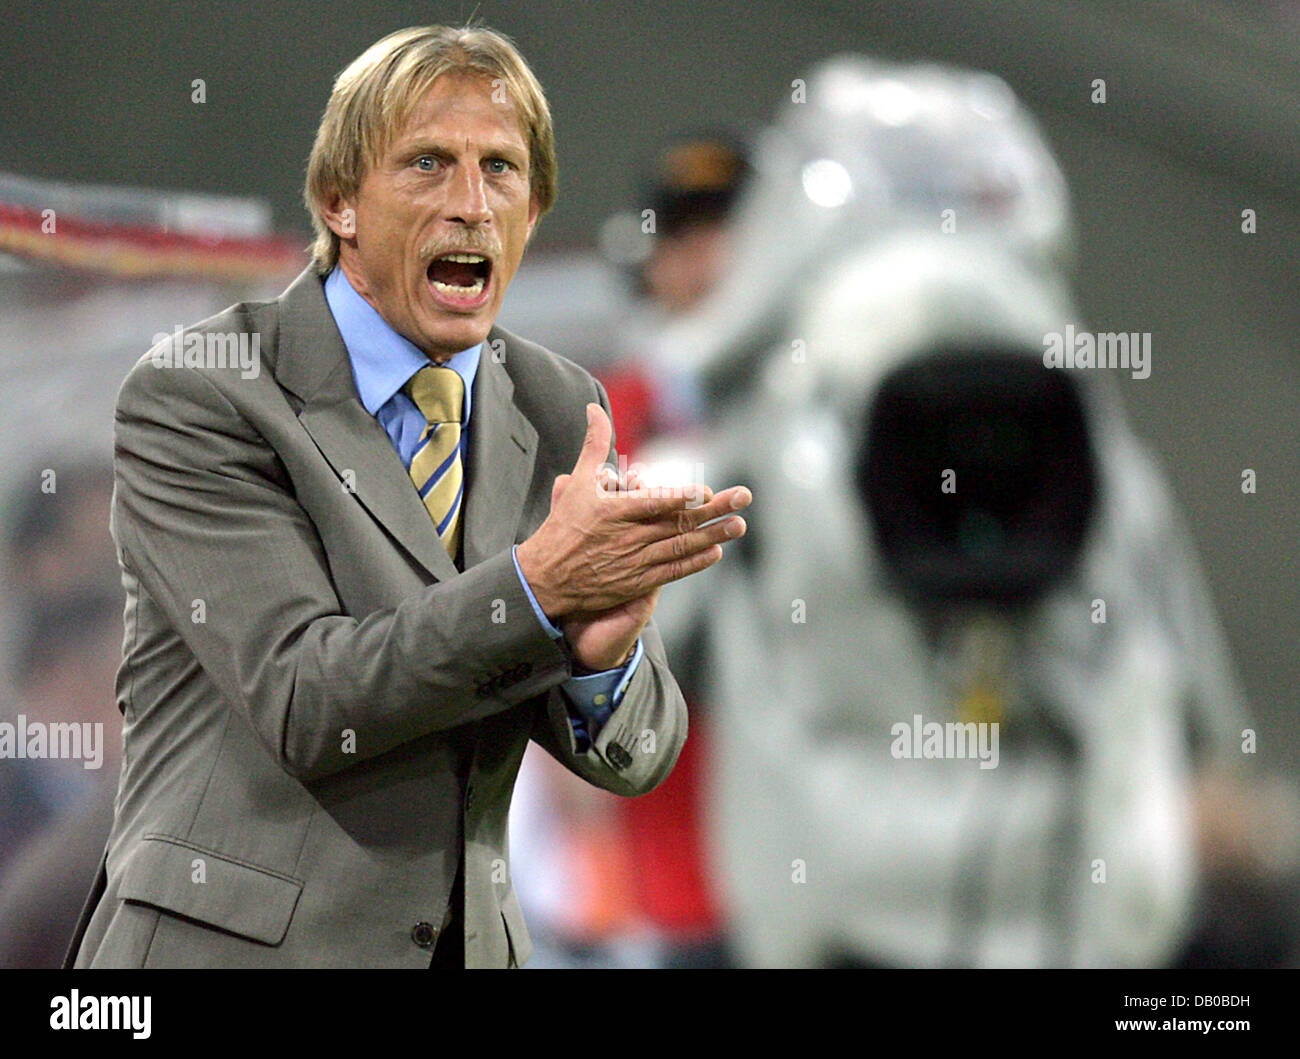 Cologne's head coach Christoph Daum gestures and shouts at the sideline during the soccer friendly 1st FC Cologne - Stock Image